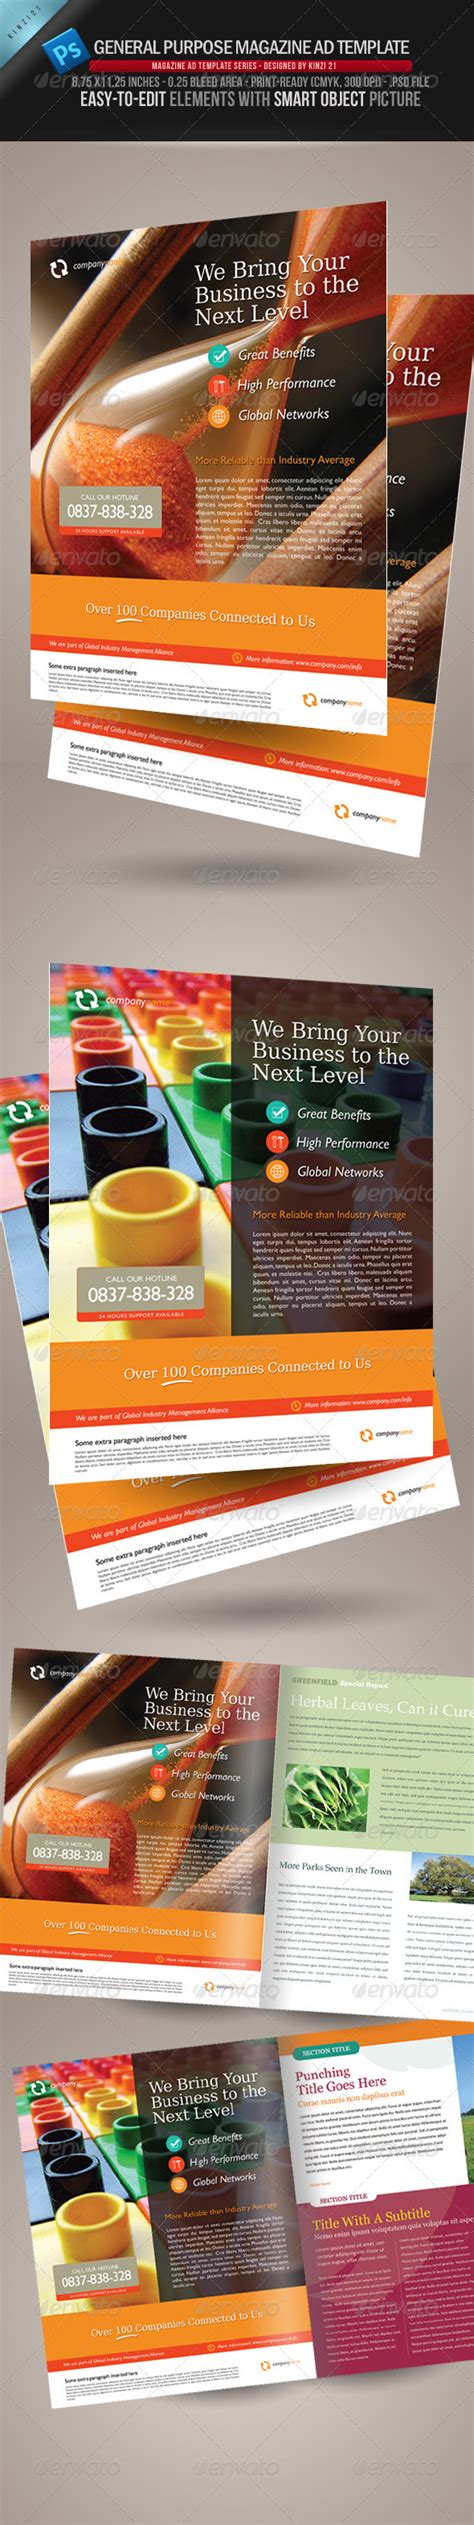 General Purpose Magazine Ad Template  Graphicriver. Sample Of Certificate Template Editable Free. World Map Coloring Page Template. How To Make Gantt Chart In Google Sheets. Sample Of Application Letter And Resumes Template. Preventive Maintenance Forms Template. Excel Gantt Chart Template. Physical Inventory Count Sheet Excel Template. Hire Agreement Template Australia Gbfdp